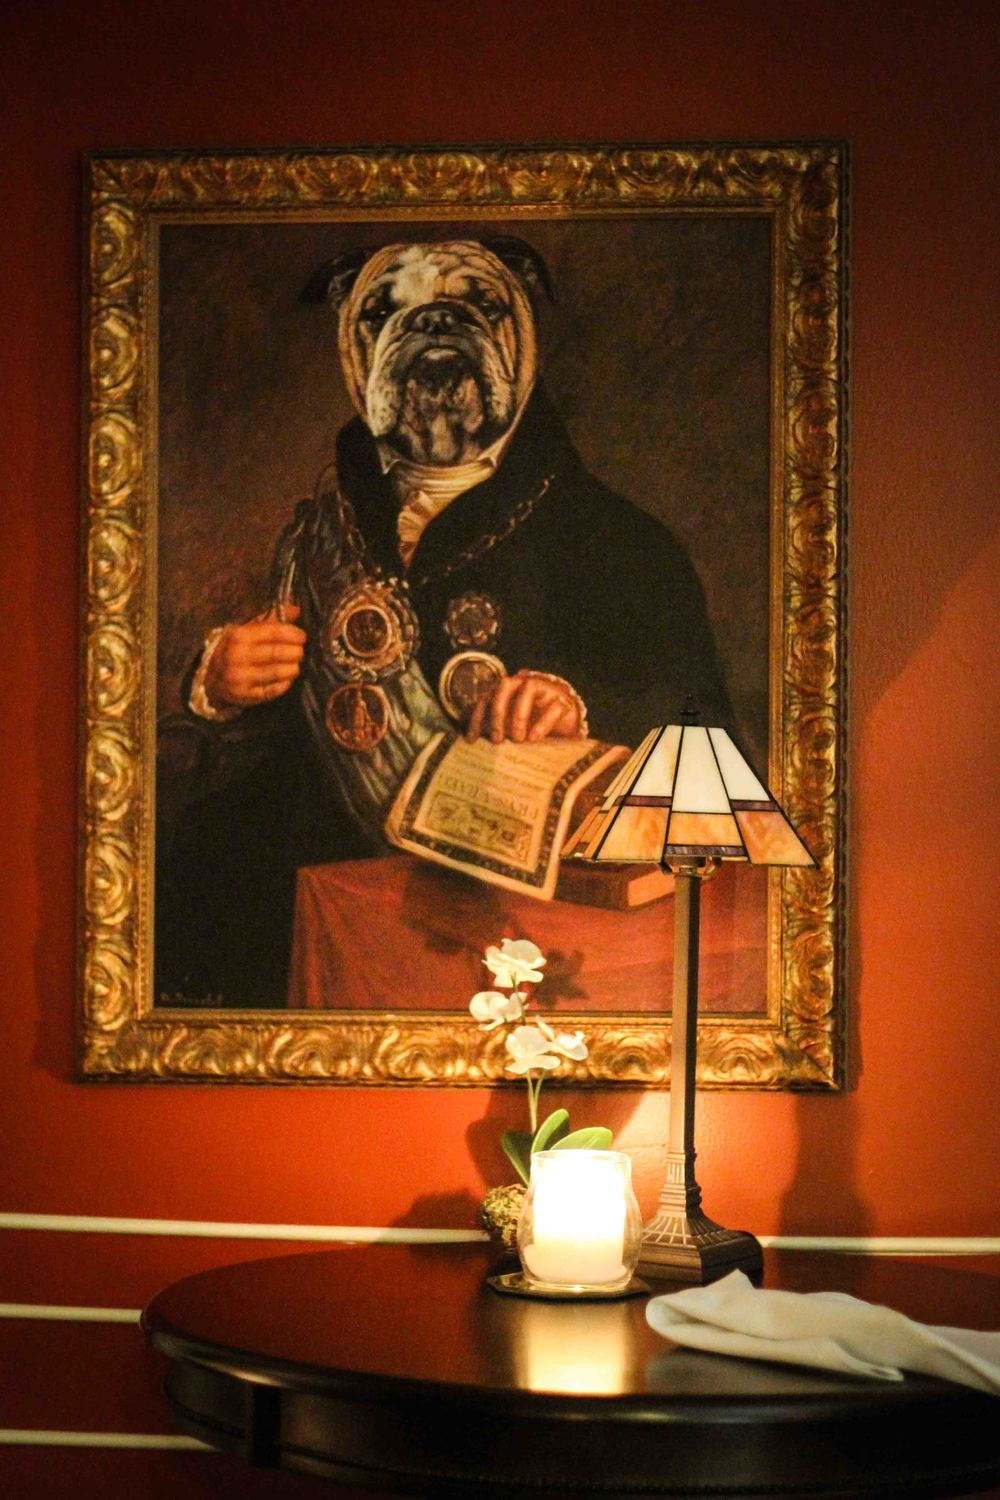 Smoking lounge art...I have a thing for english bull dogs